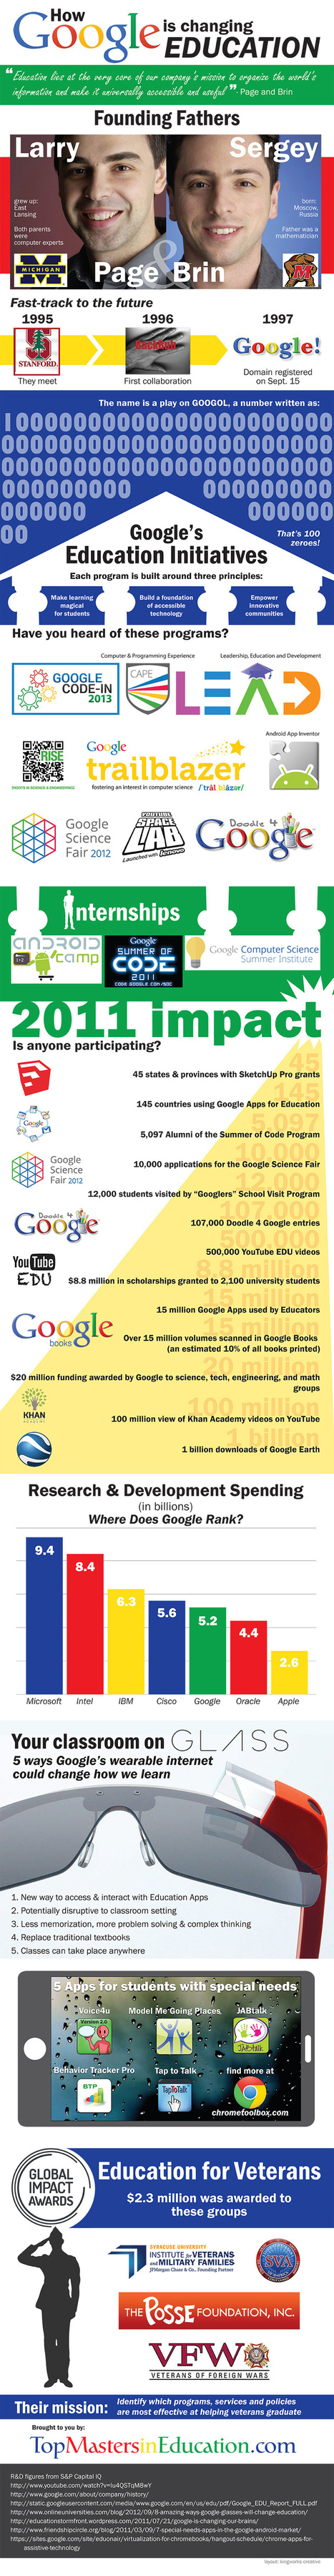 How Google is Changing Education | infografiando | Scoop.it